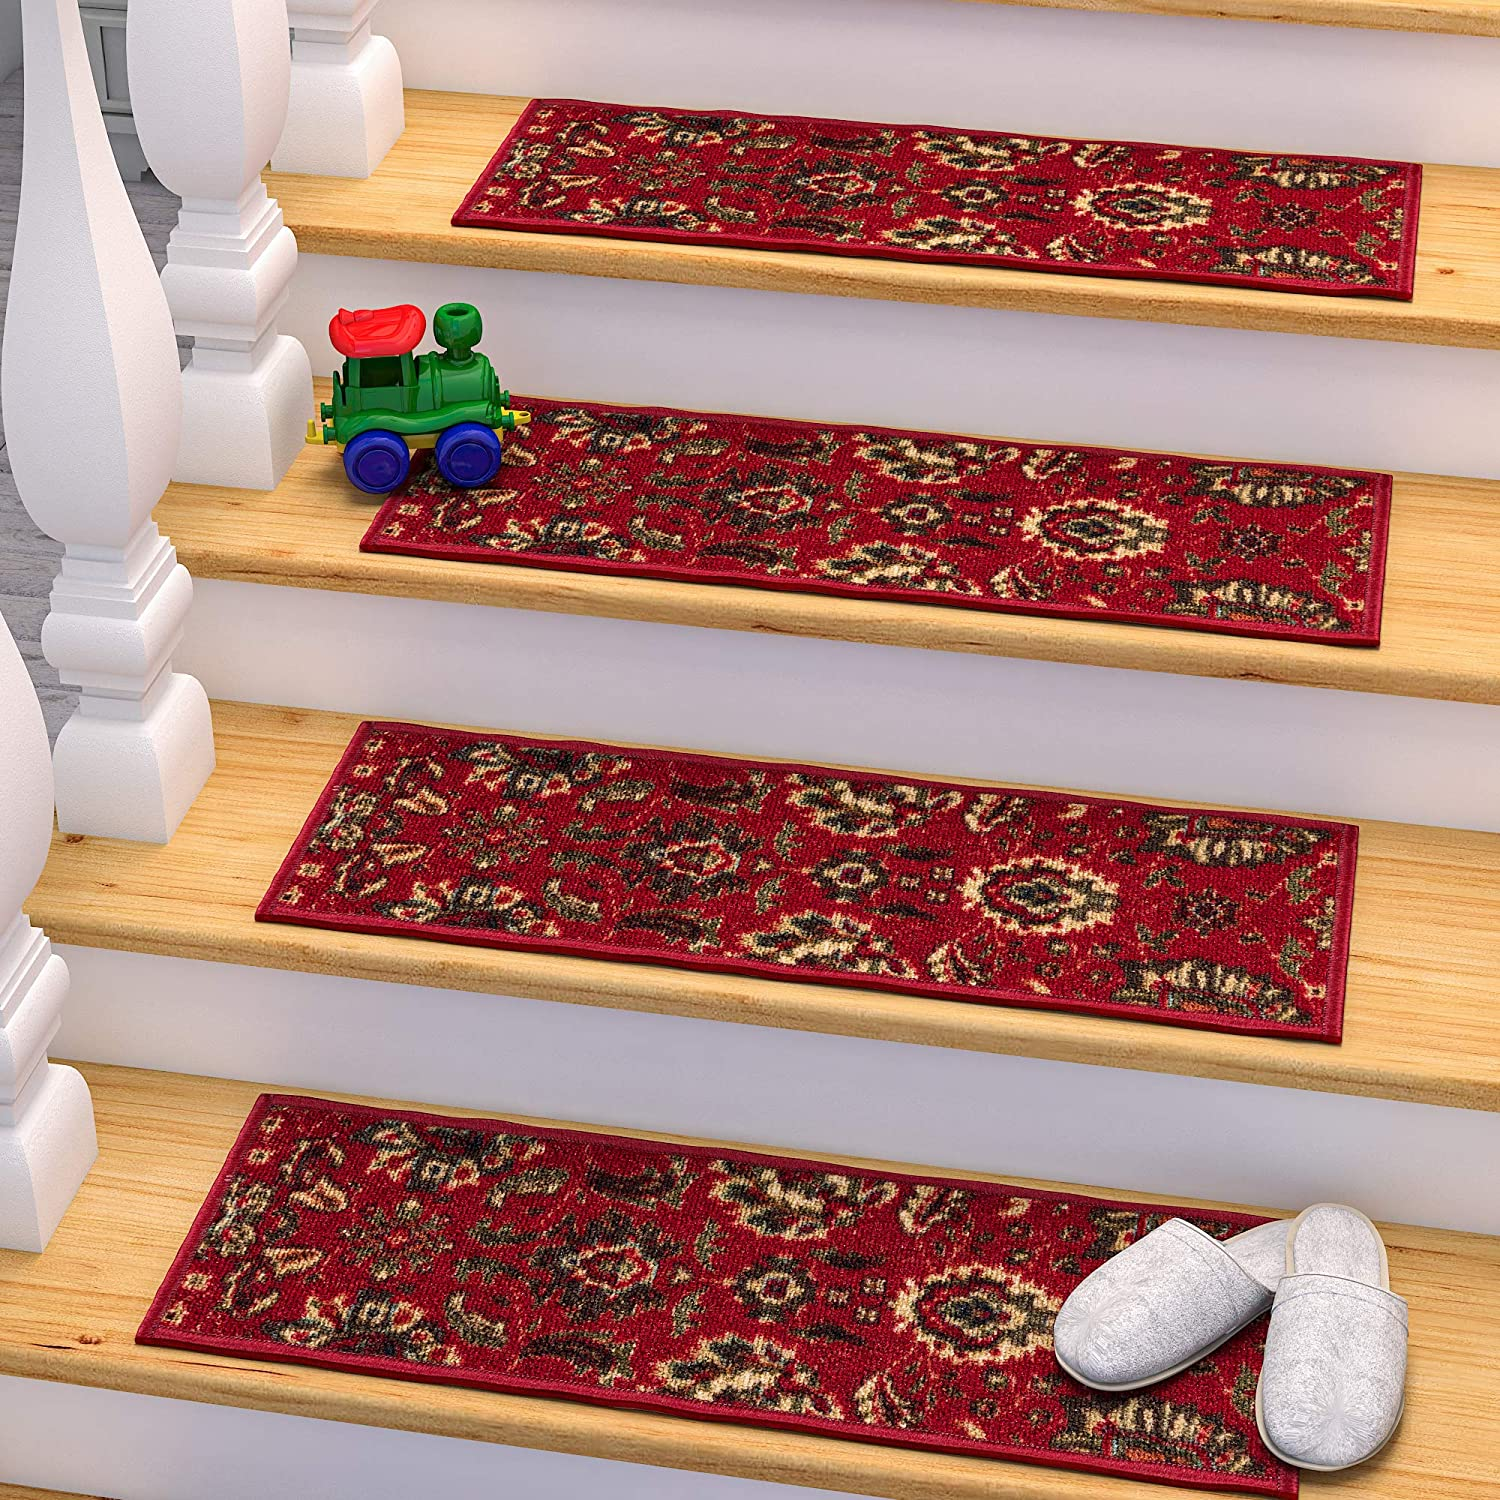 13 Pack Ottomanson OTH2130-13 Stair Tread Red